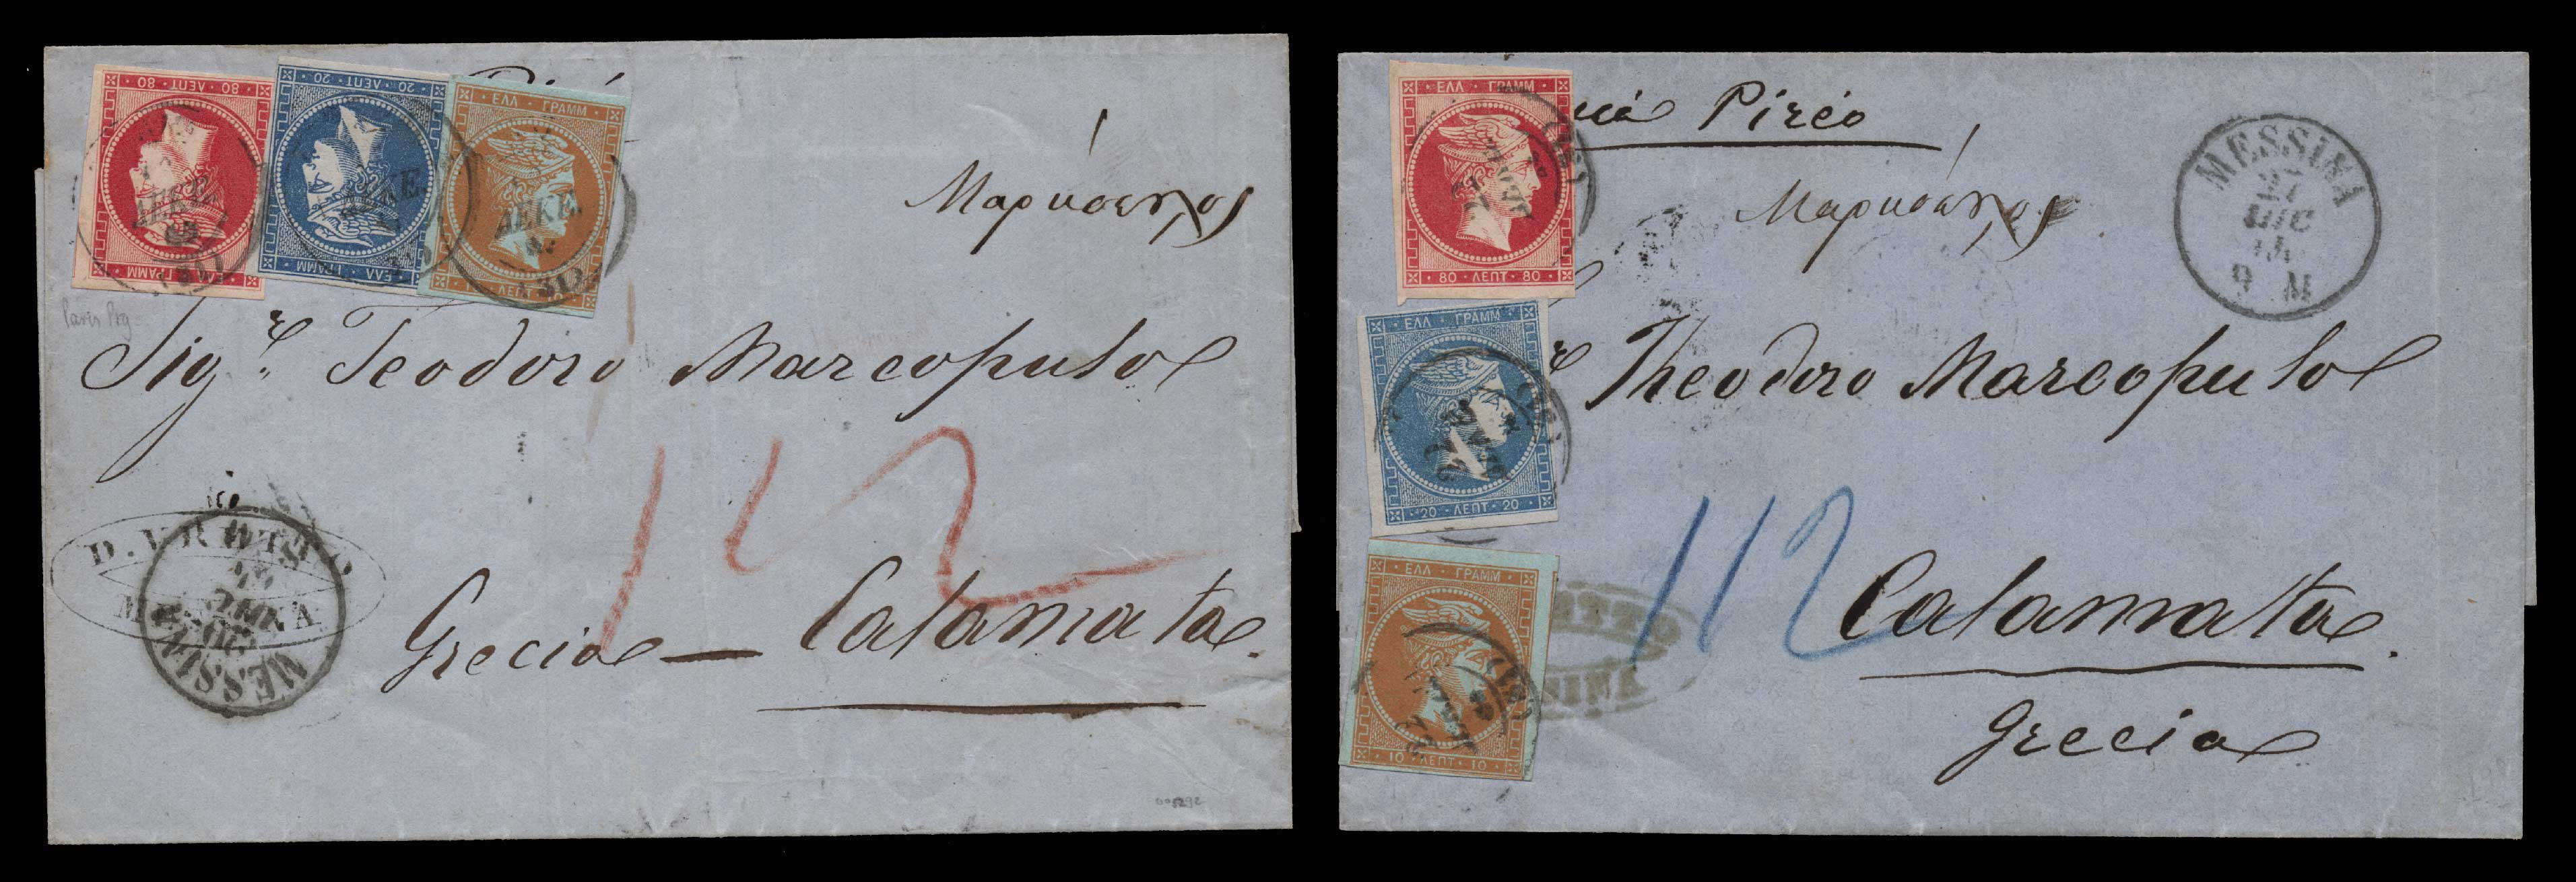 Lot 165 - -  LARGE HERMES HEAD 1862/67 consecutive athens printings -  Athens Auctions Public Auction 70 General Stamp Sale